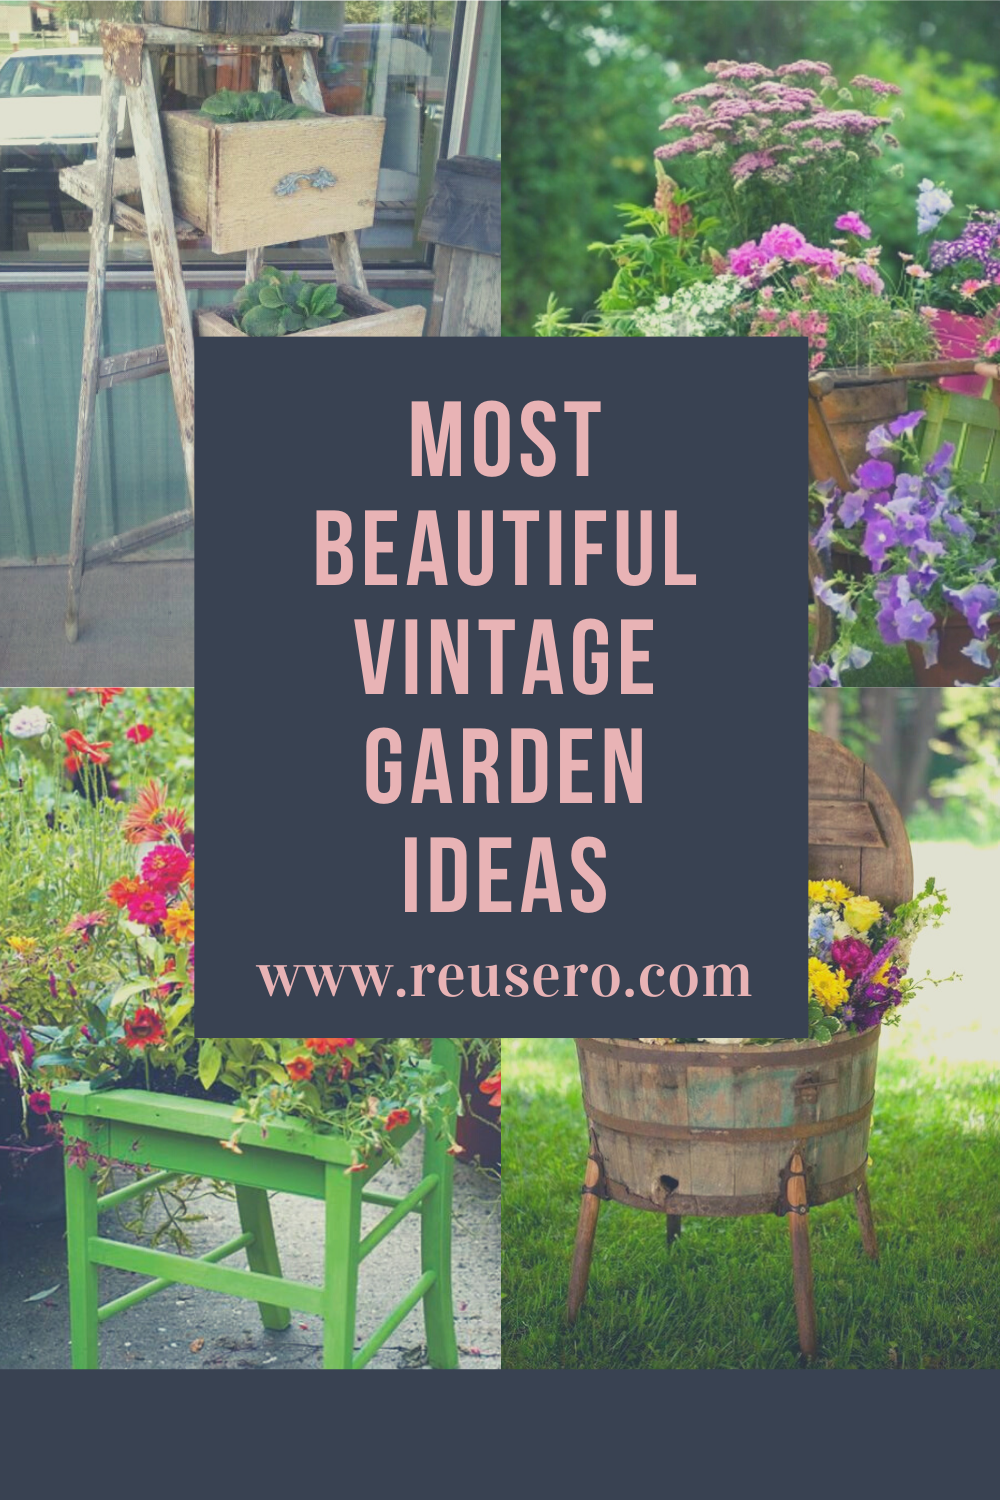 Upcycle Projects And Ideas For Garden Diy Upcycled Household Items And Junk Into Furniture Decor Diy Garden Projects Vintage Garden Japanese Garden Tools